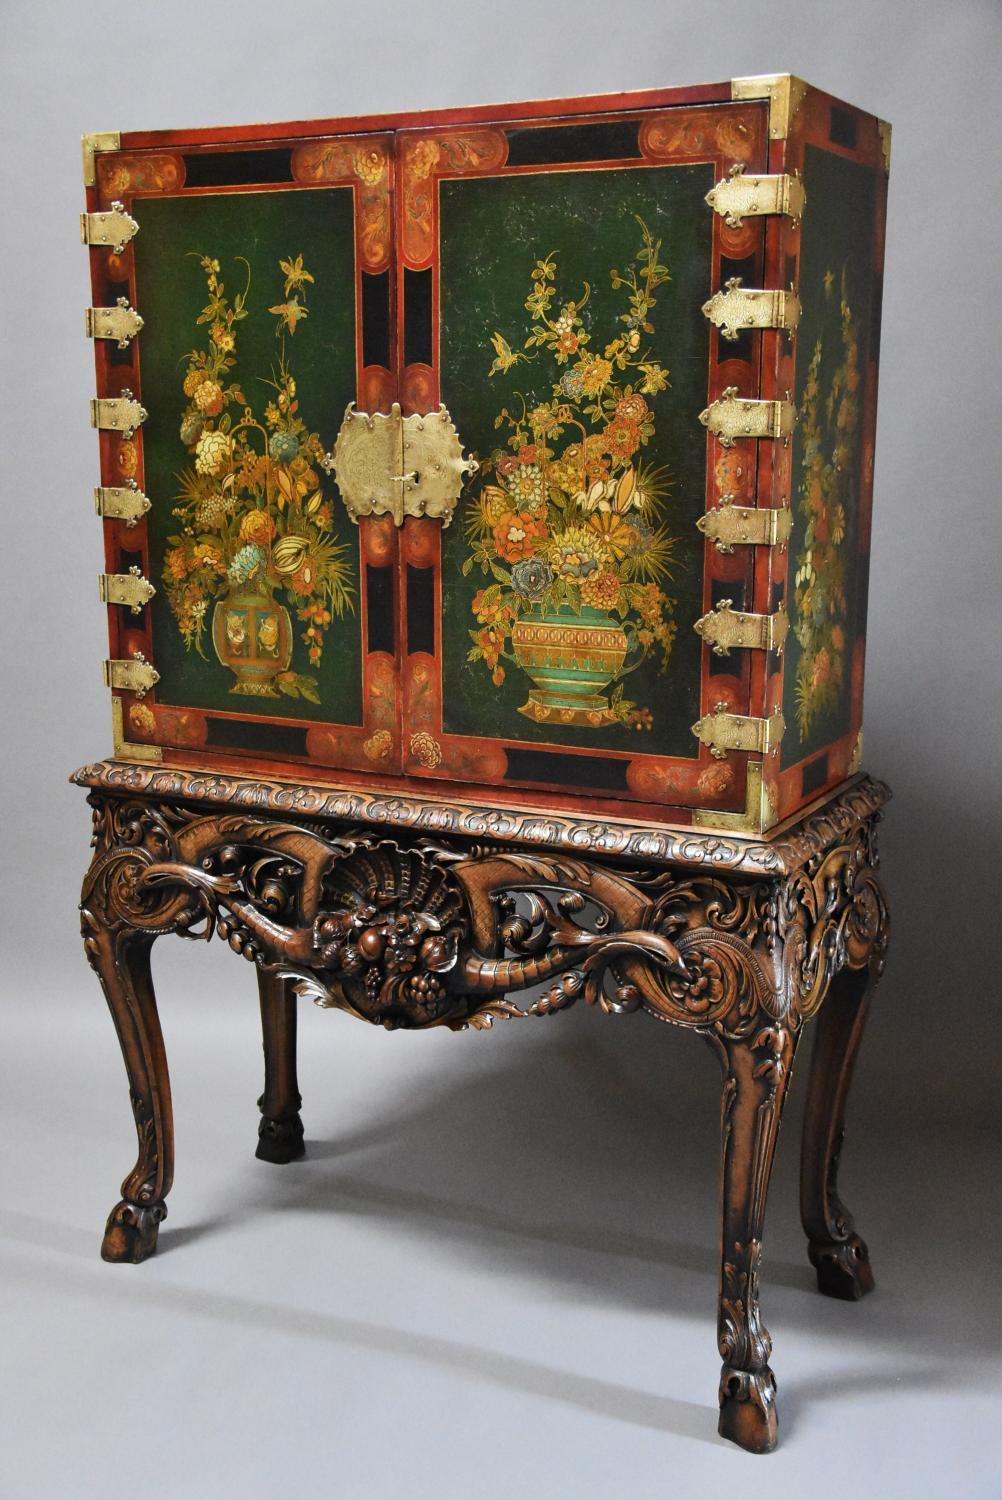 Superb quality lacquered cabinet on stand